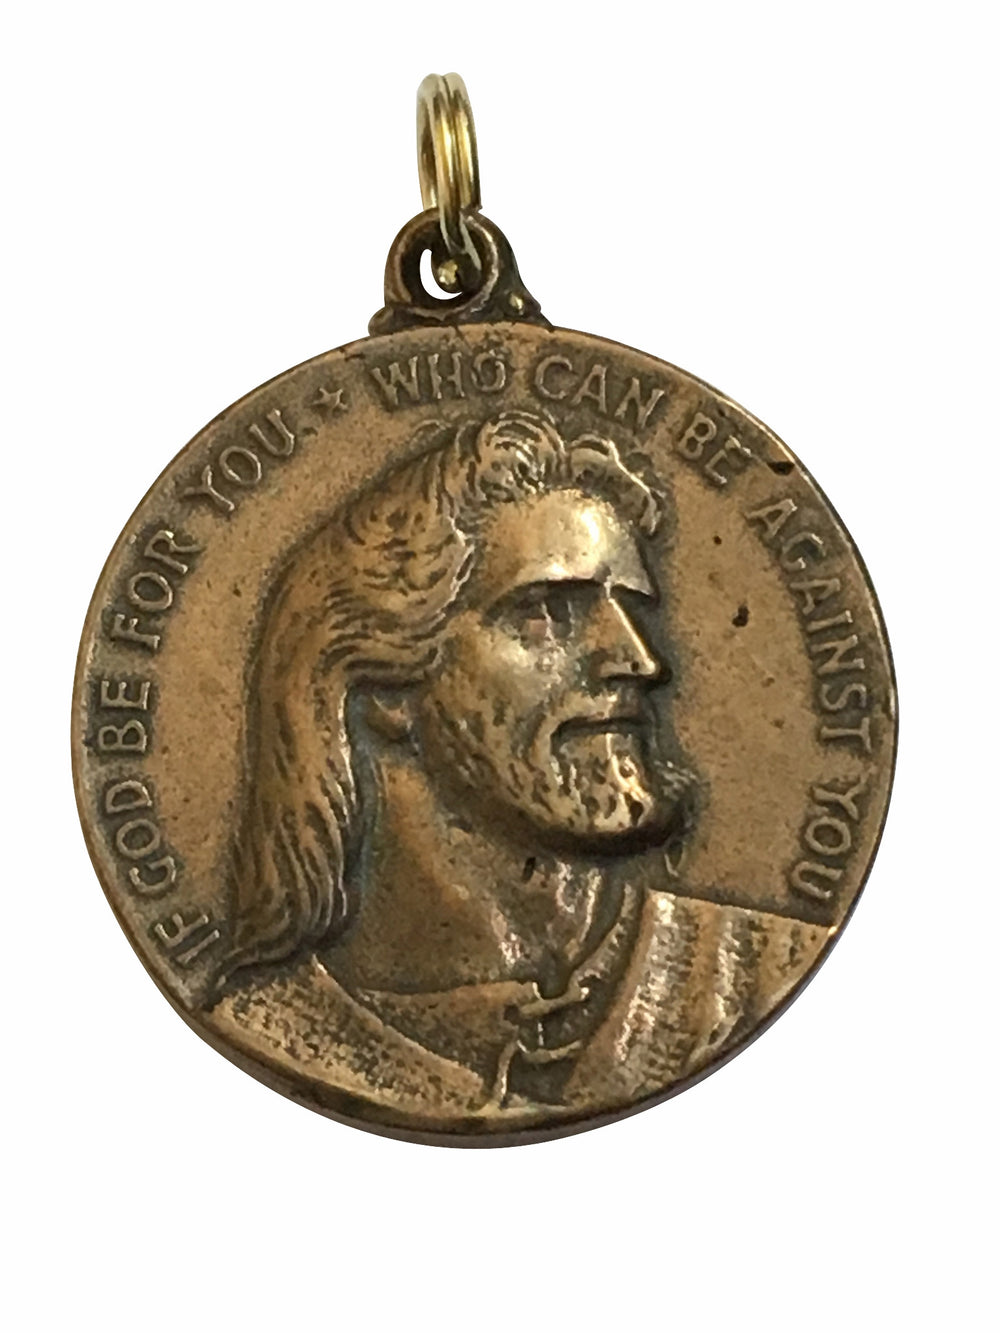 1st AA Chip: If God be for you, Who can be against you Jesus Scripture Medal